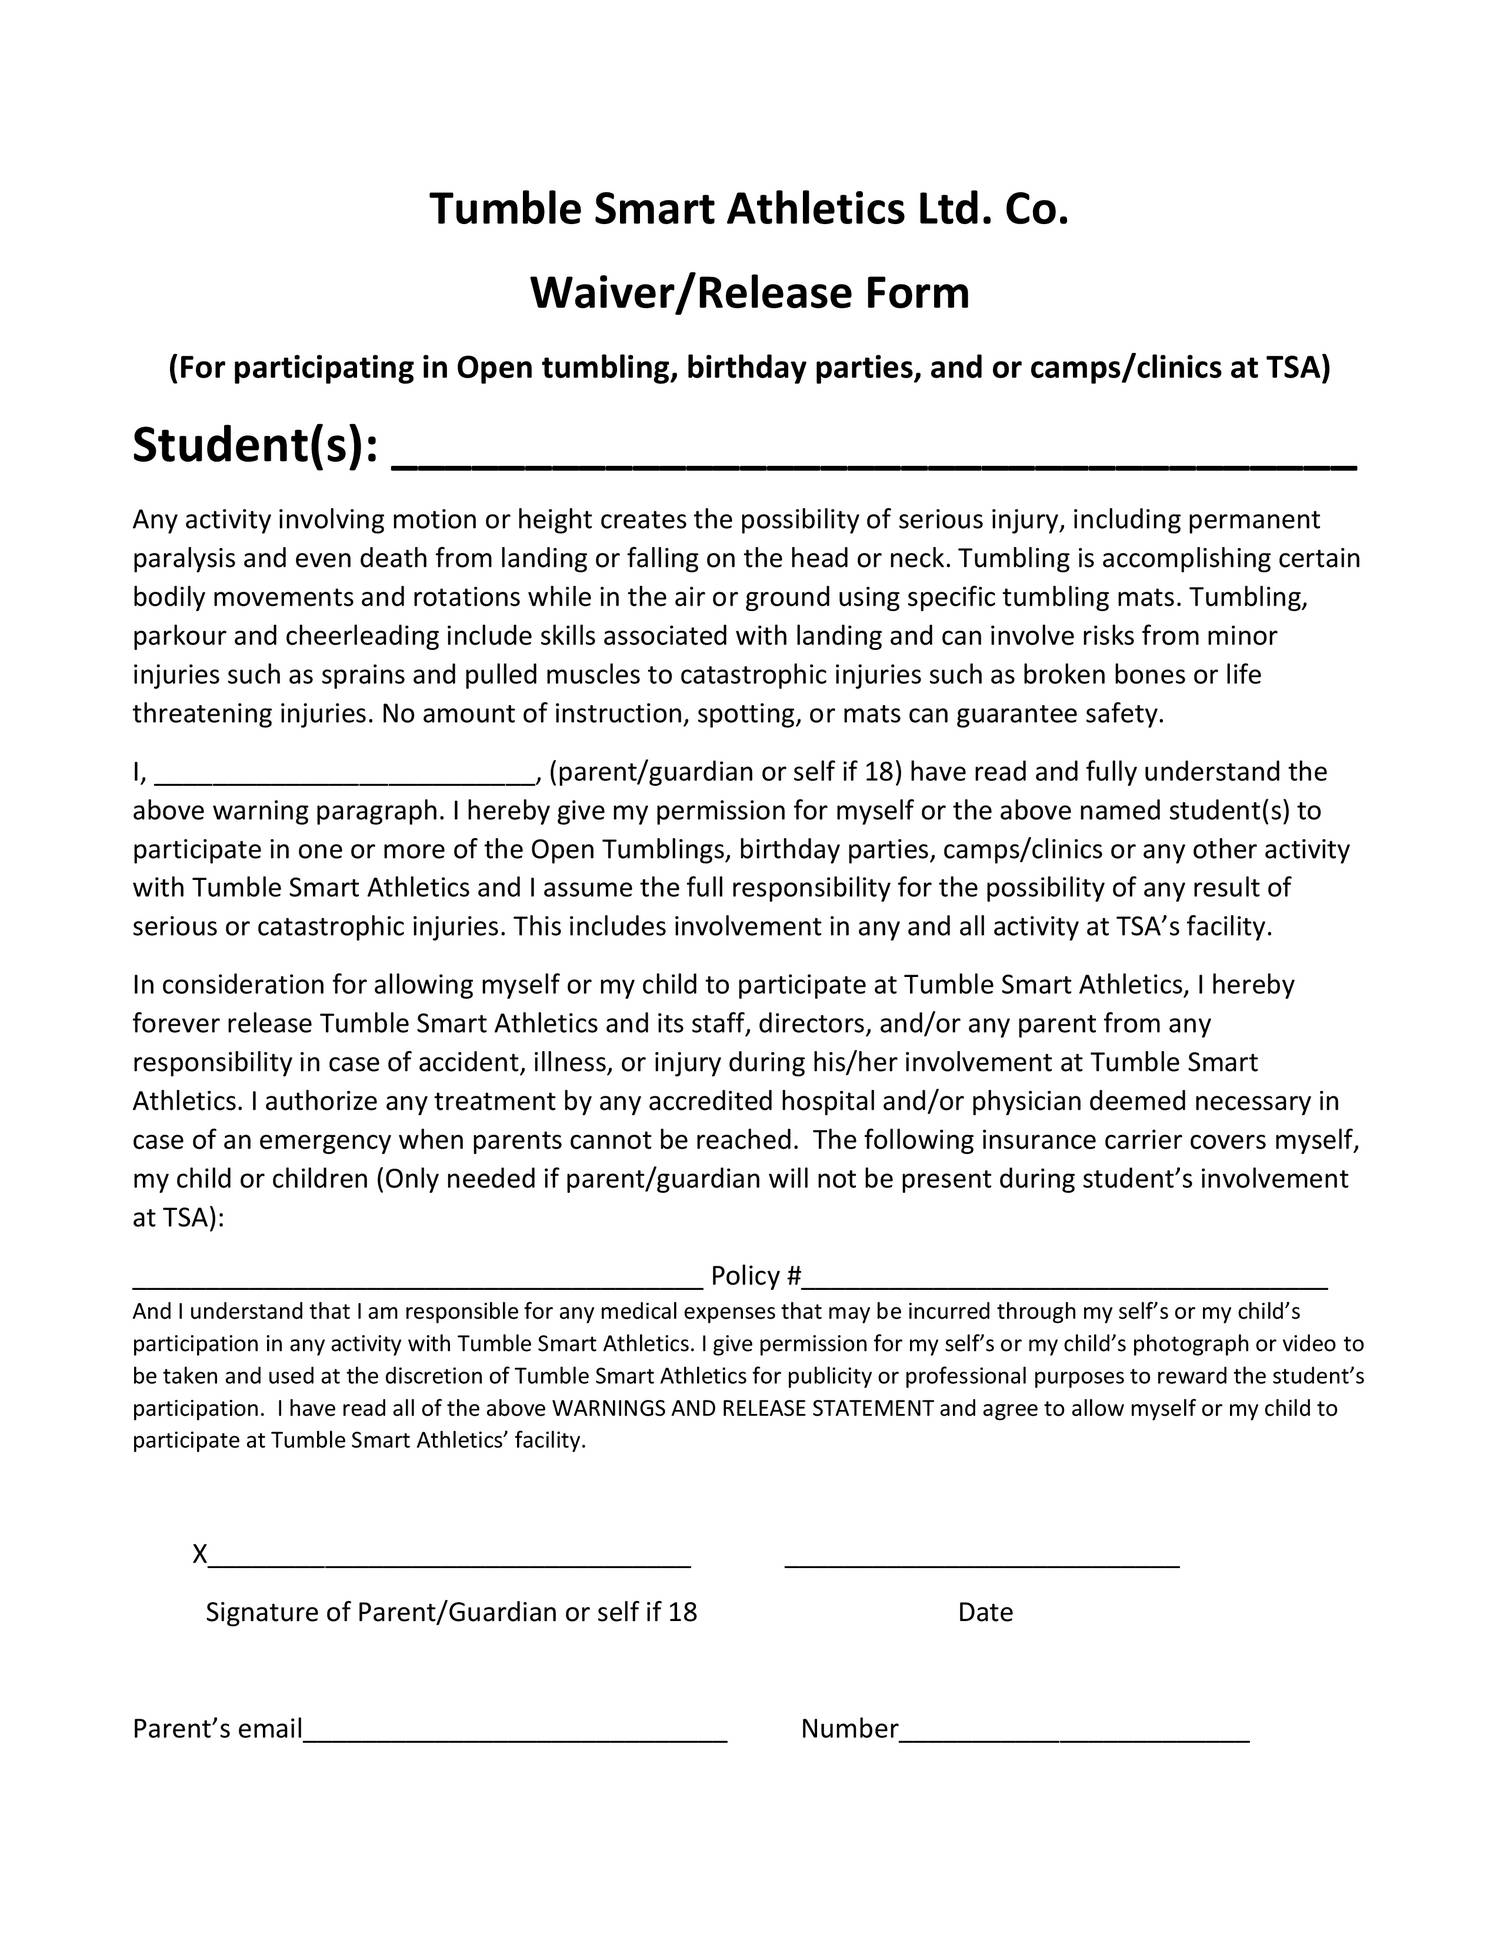 waiver and release form for free templates flyer